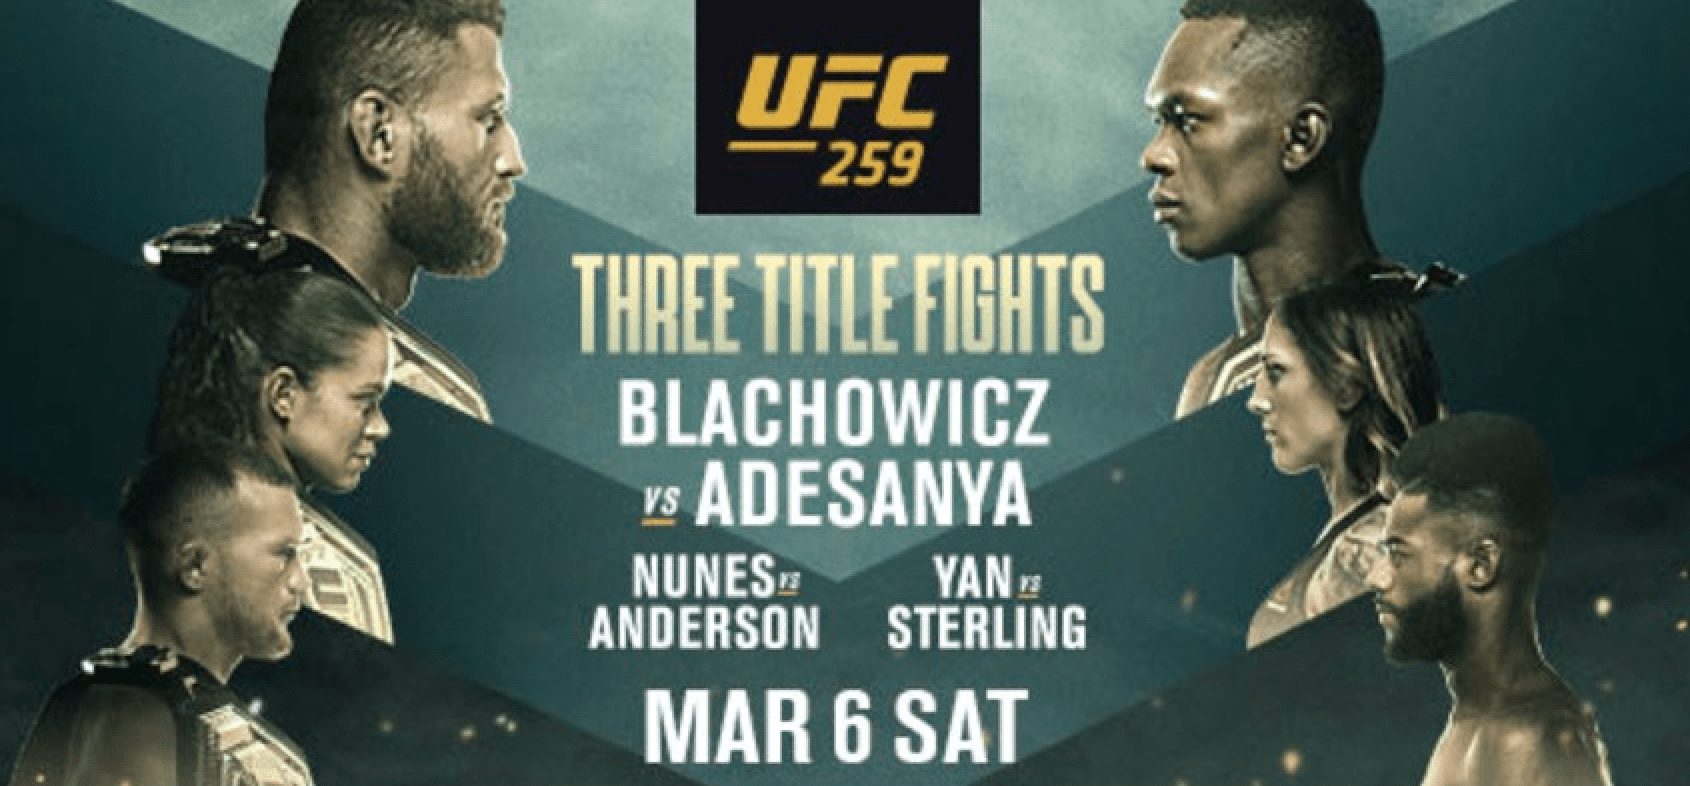 UFC 259 results, Blachowicz, Adesanya, Nunes, Anderson, Yan, Sterling